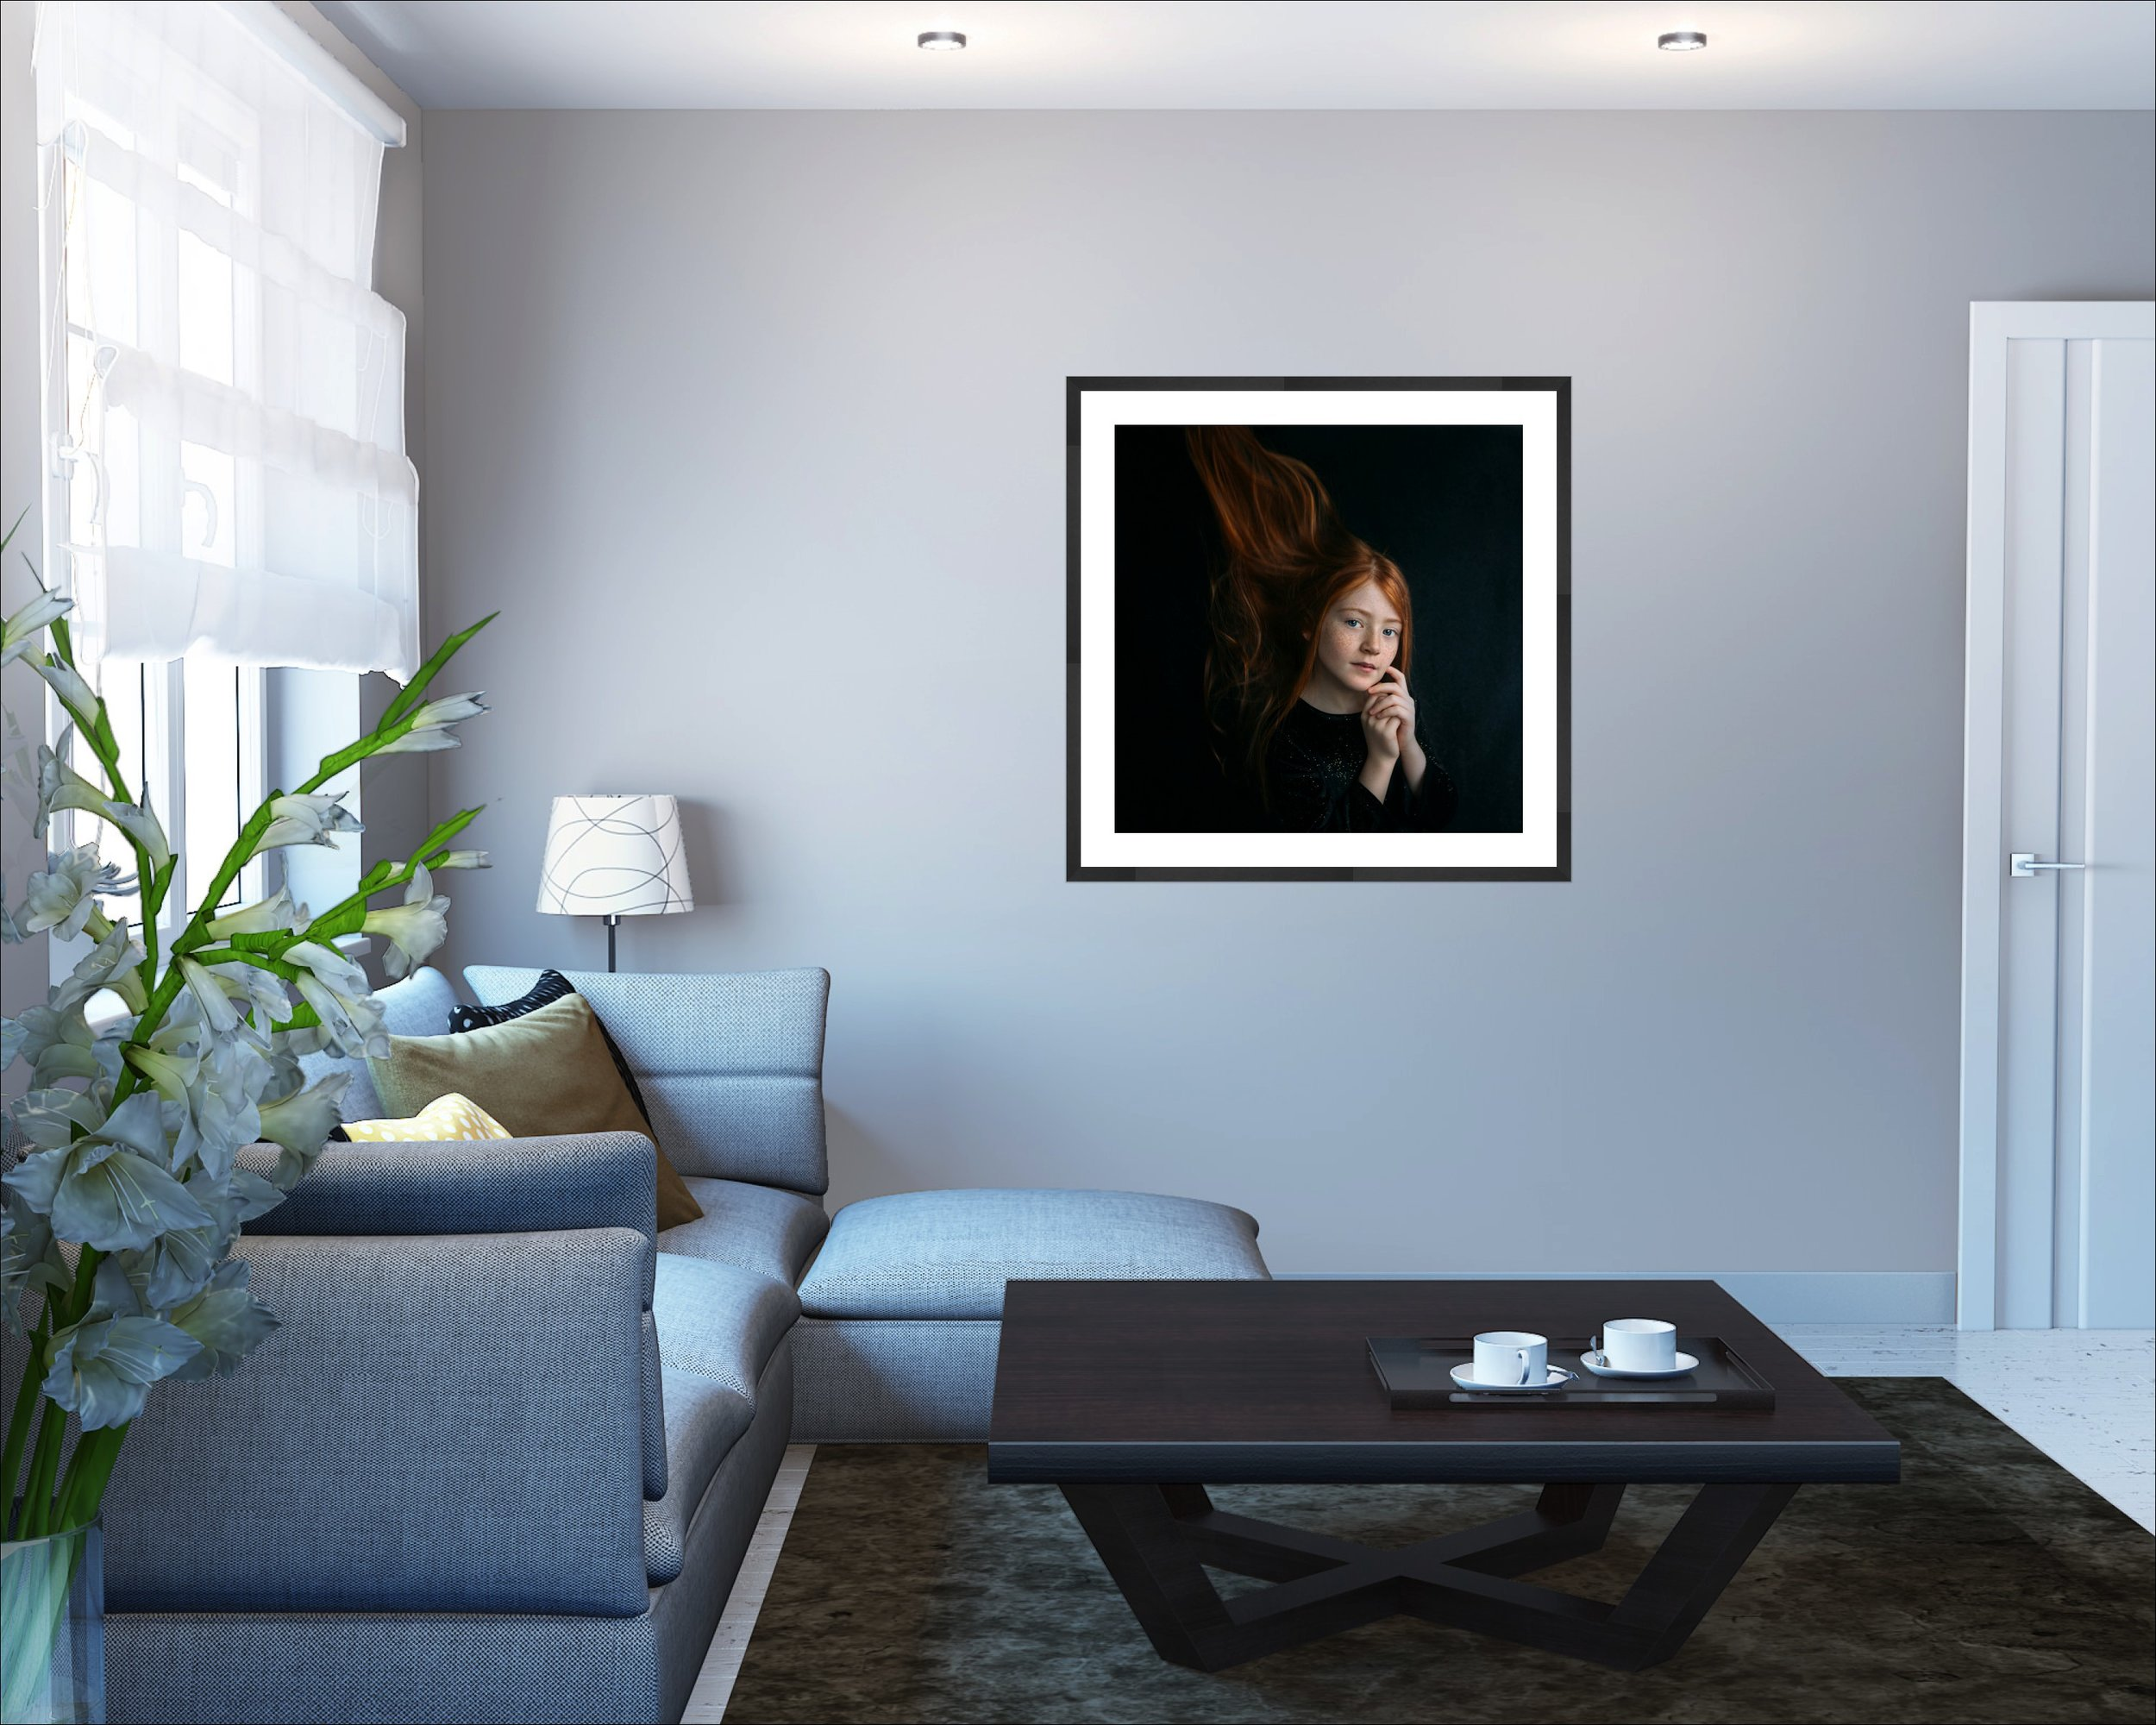 Art deserves a place on your walls -